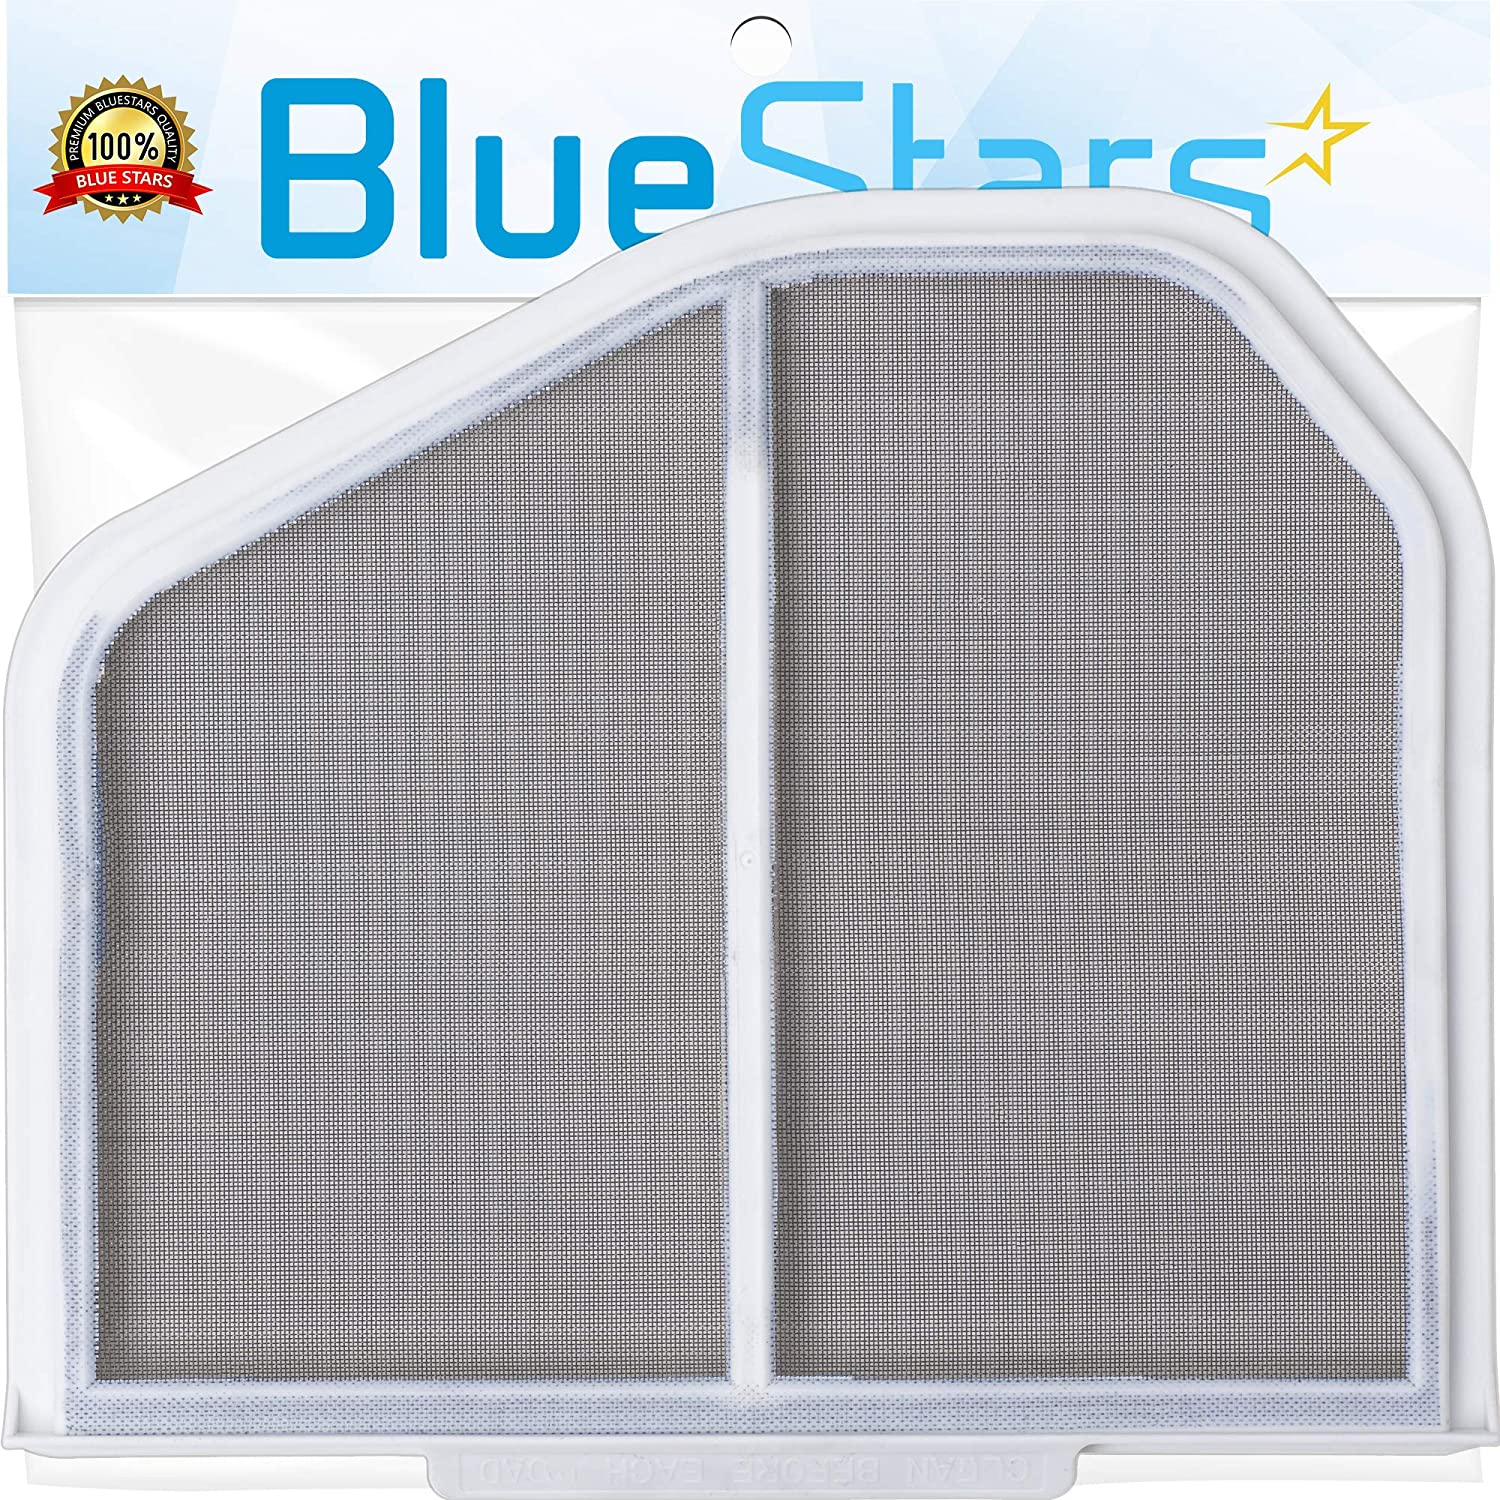 Ultra Durable W10120998 Dryer Lint Filter Replacement Part By Blue Stars - Exact Fit for Whirlpool & Kenmore Dryers - Replaces 1206293 3390721 8066170 8572268